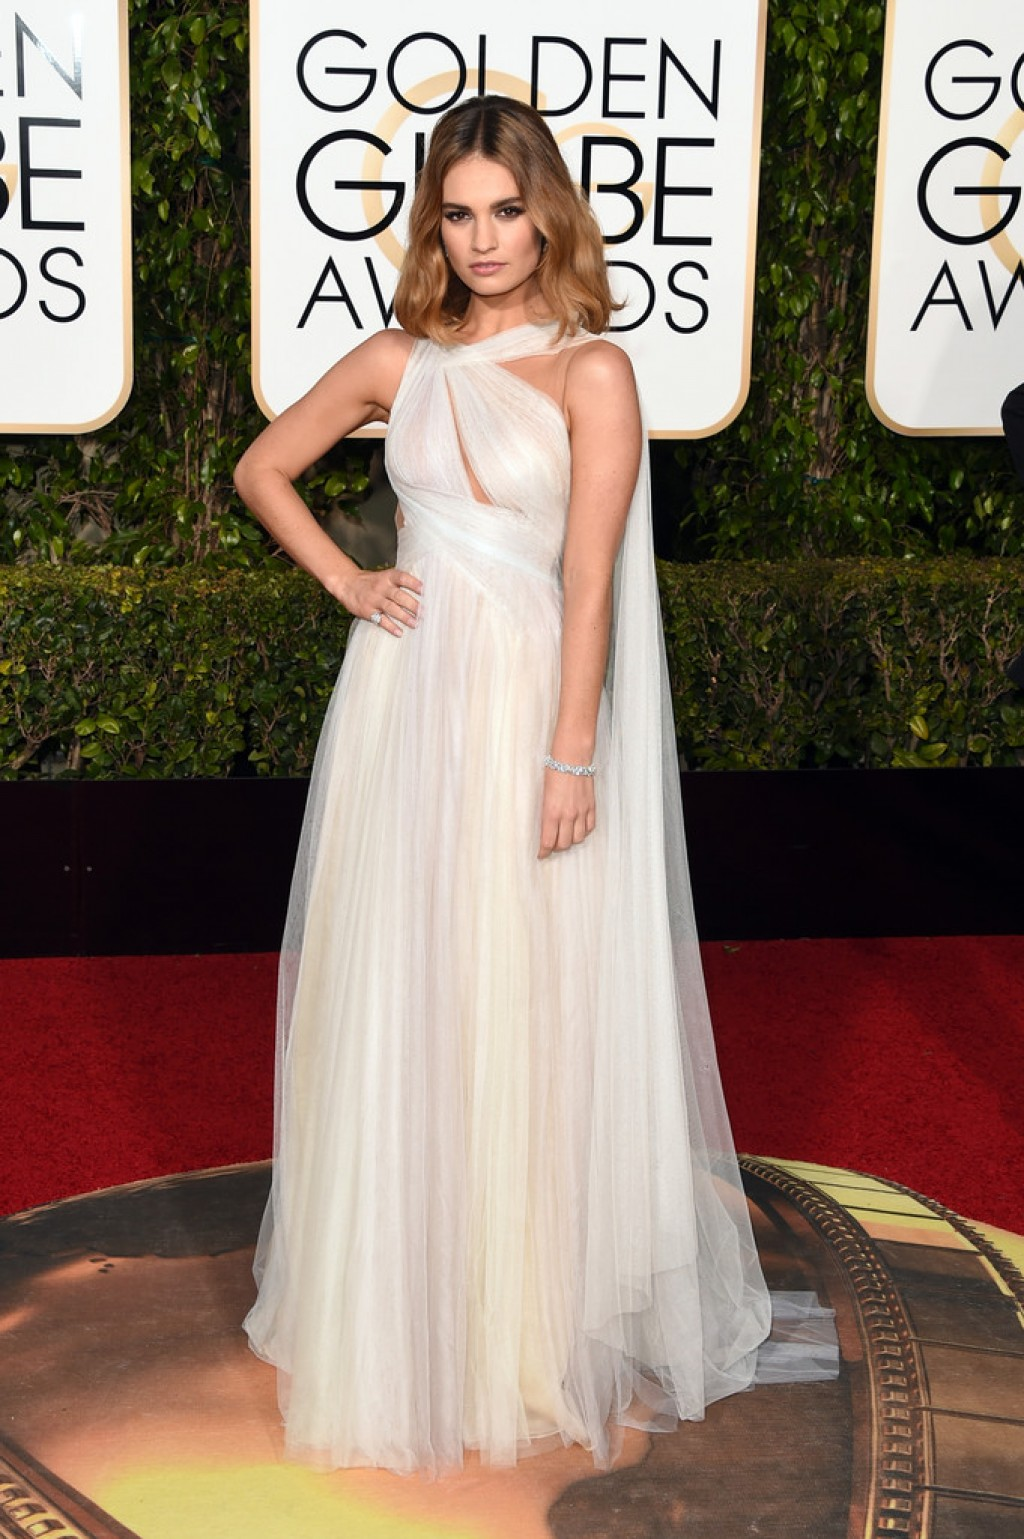 2016-Golden-Globe-Awards-Lily-James-Gown-1024x1539